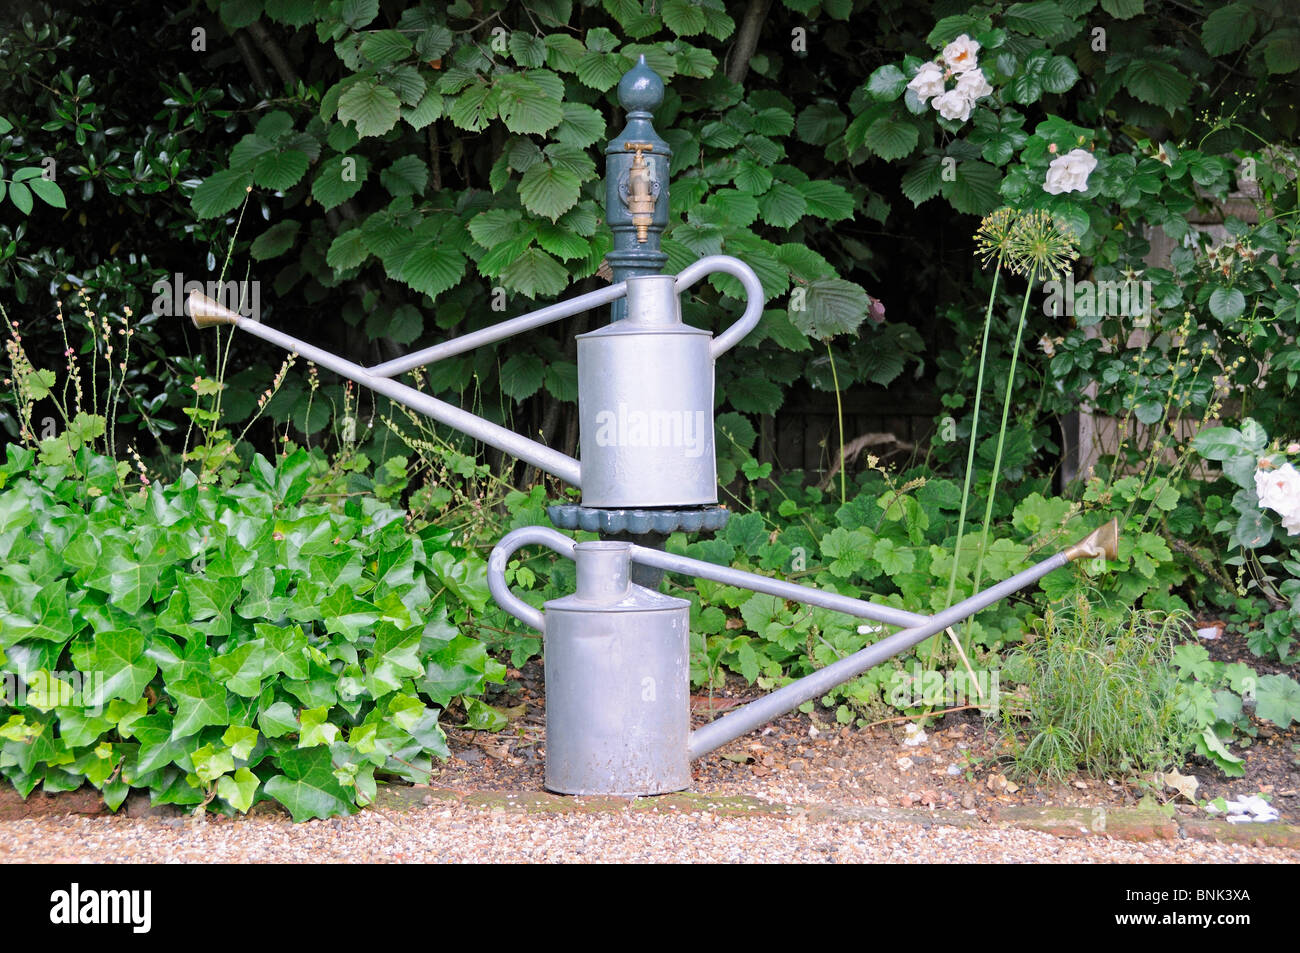 Two galvanised watering cans under ornate tap, garden, London. - Stock Image